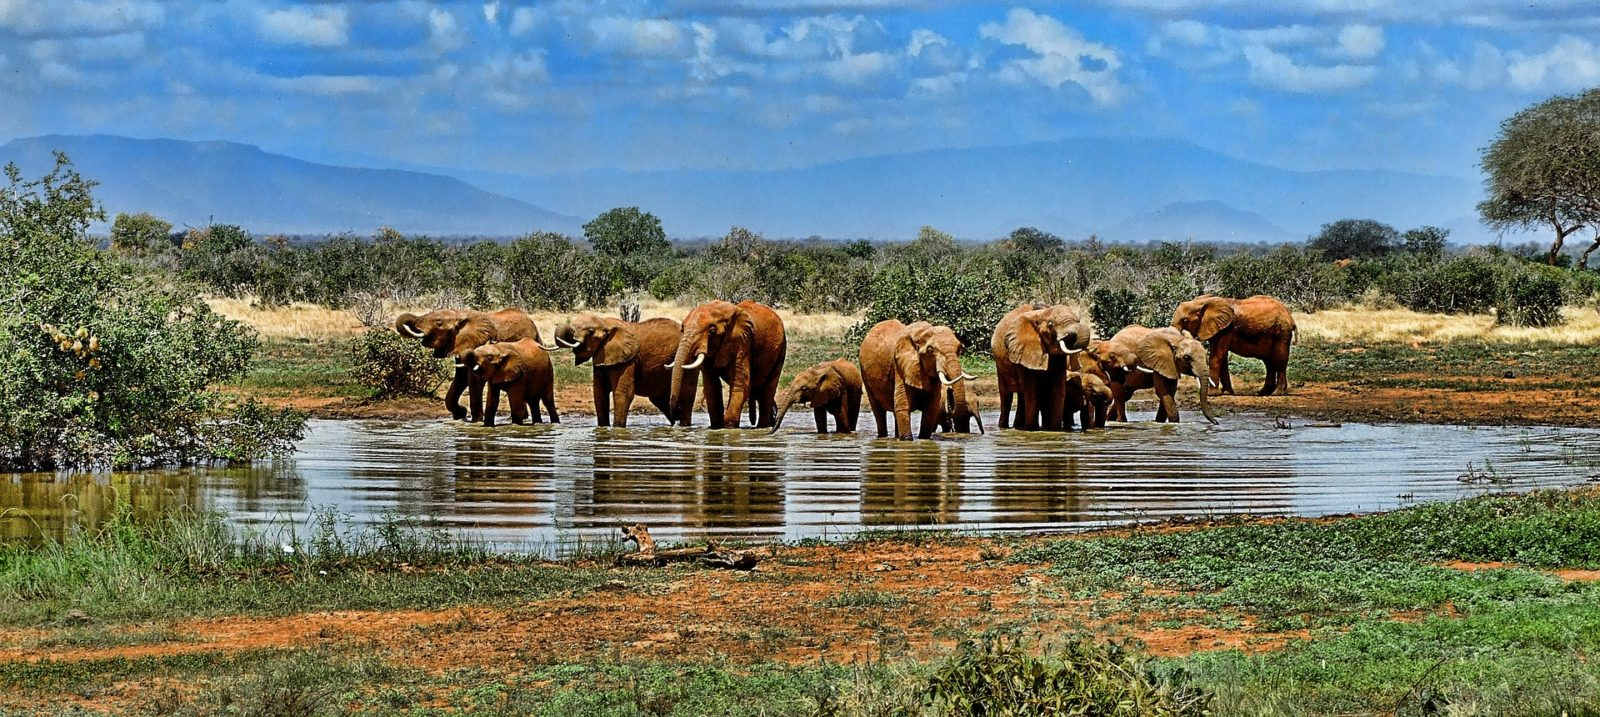 Top 10 Tourist-Friendly Places To Visit in Africa